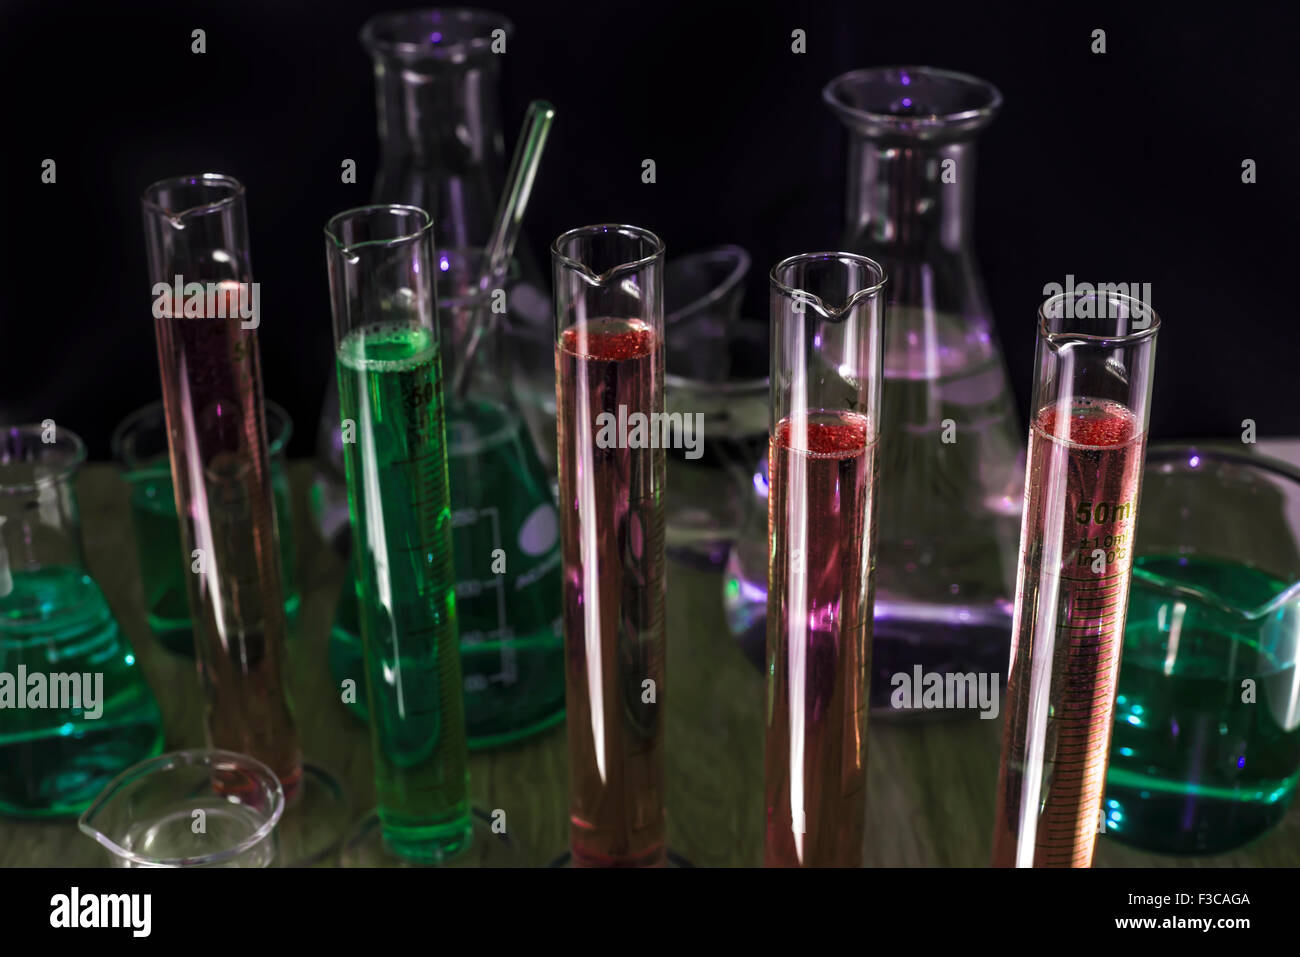 Chemistry test tubes and flasks in a darkened laboratory - Stock Image